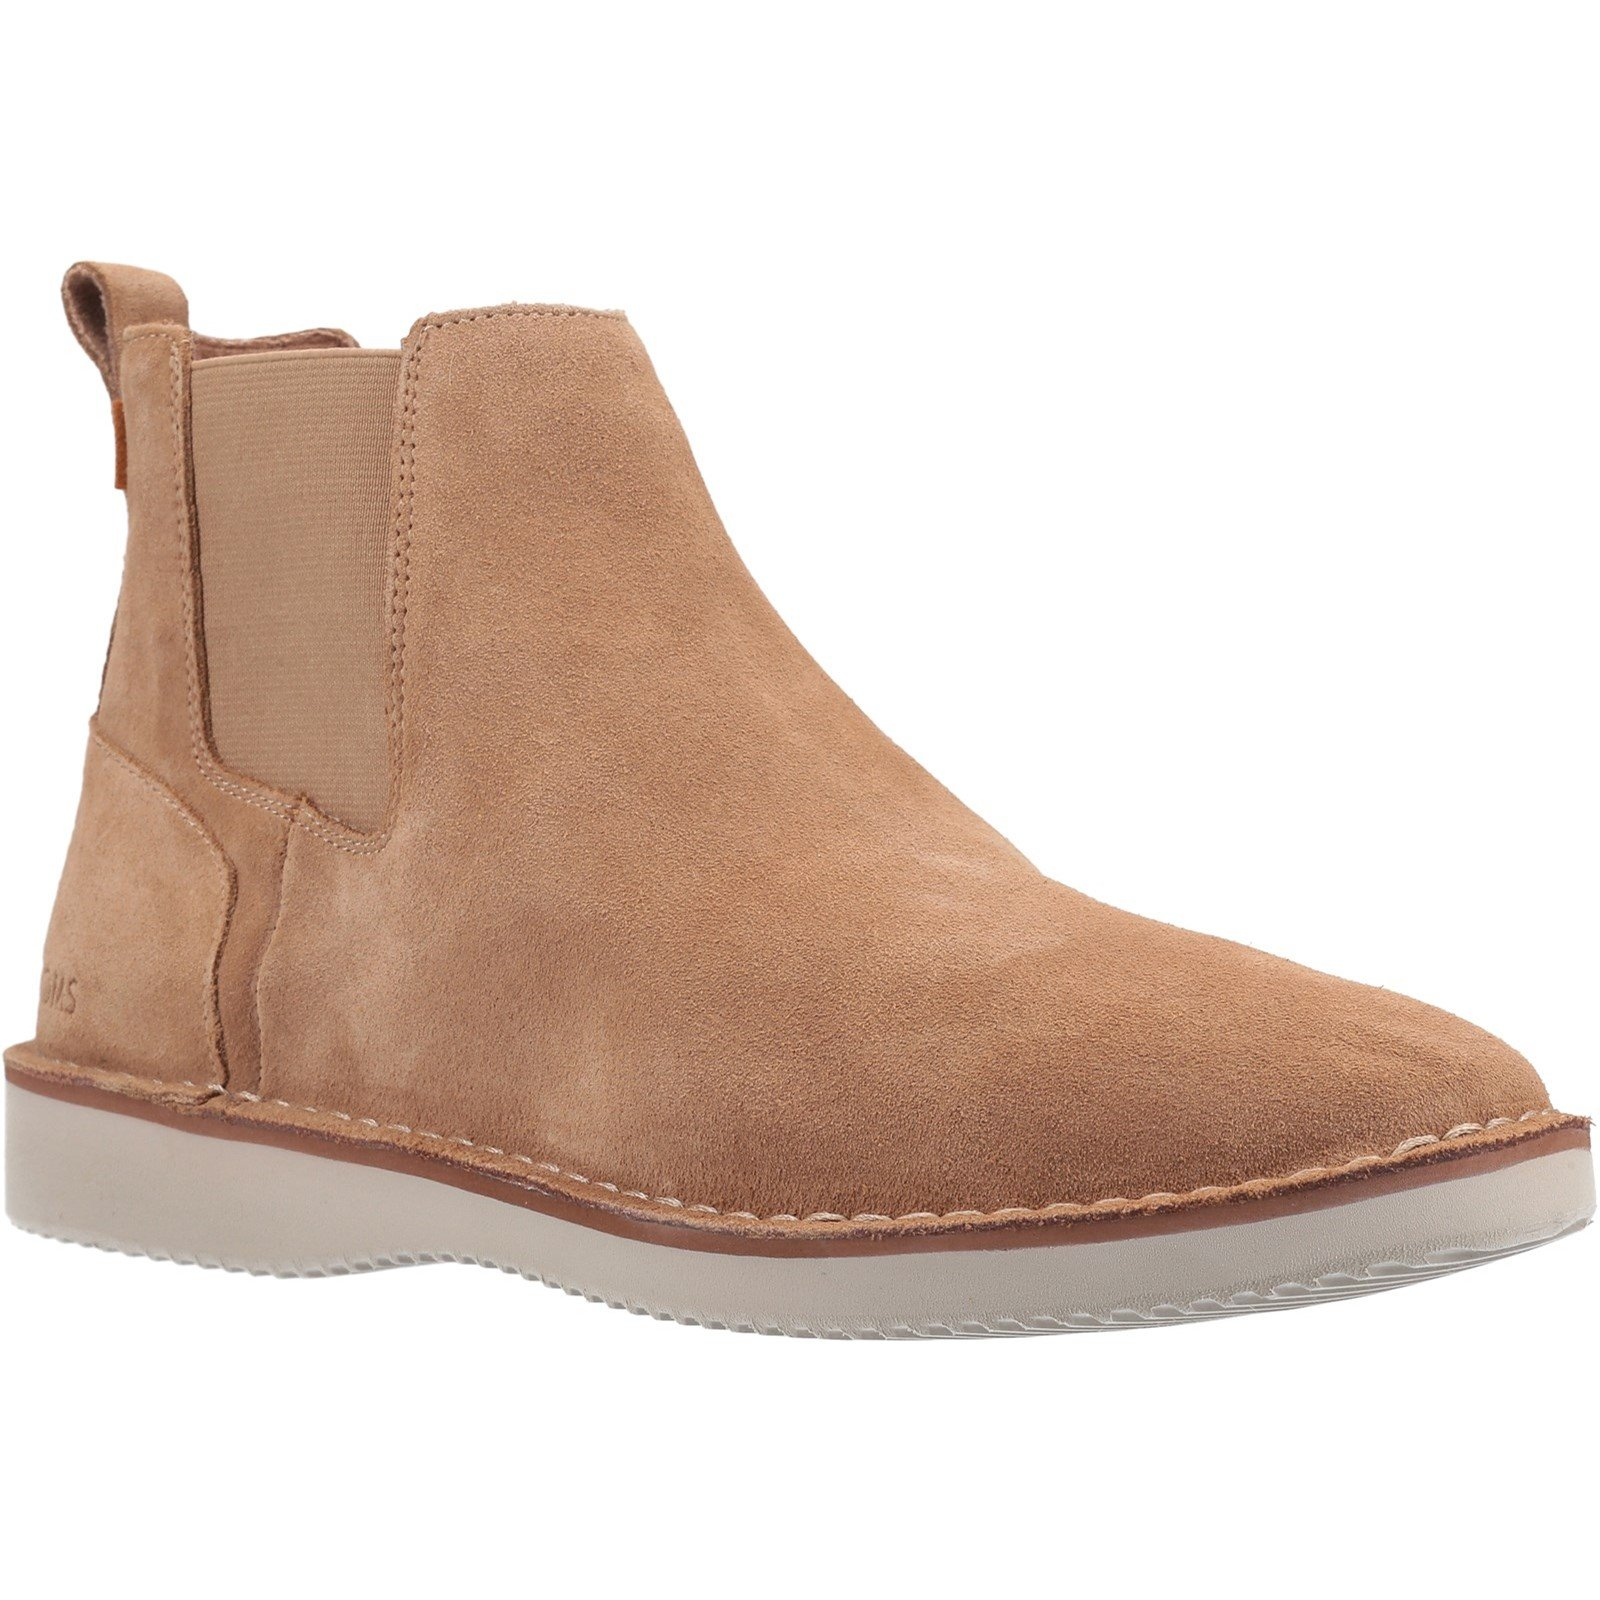 TOMS Men's Skyline Lace Up Boot Toffee 31608 - Toffee 9